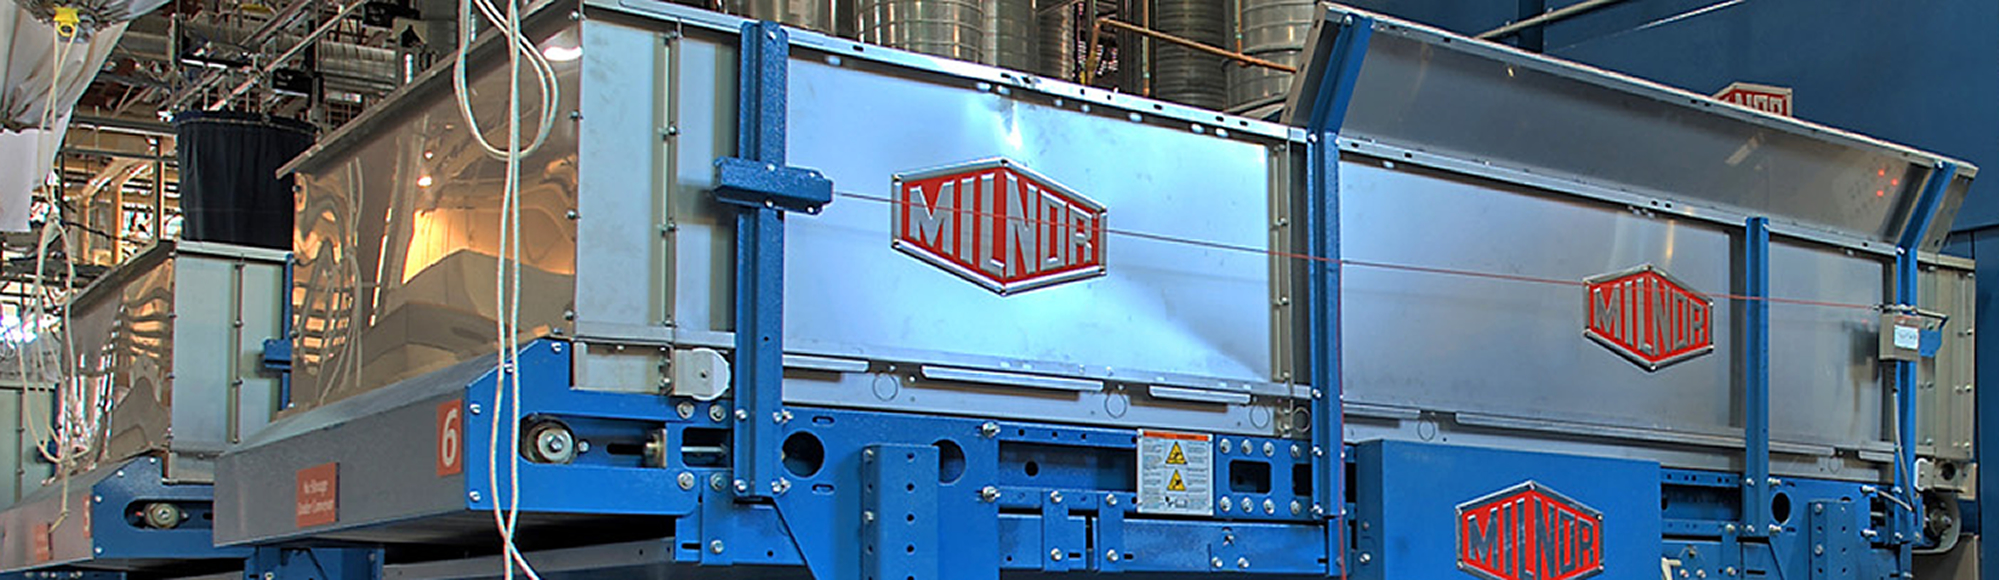 industrial laundry equipment milnor